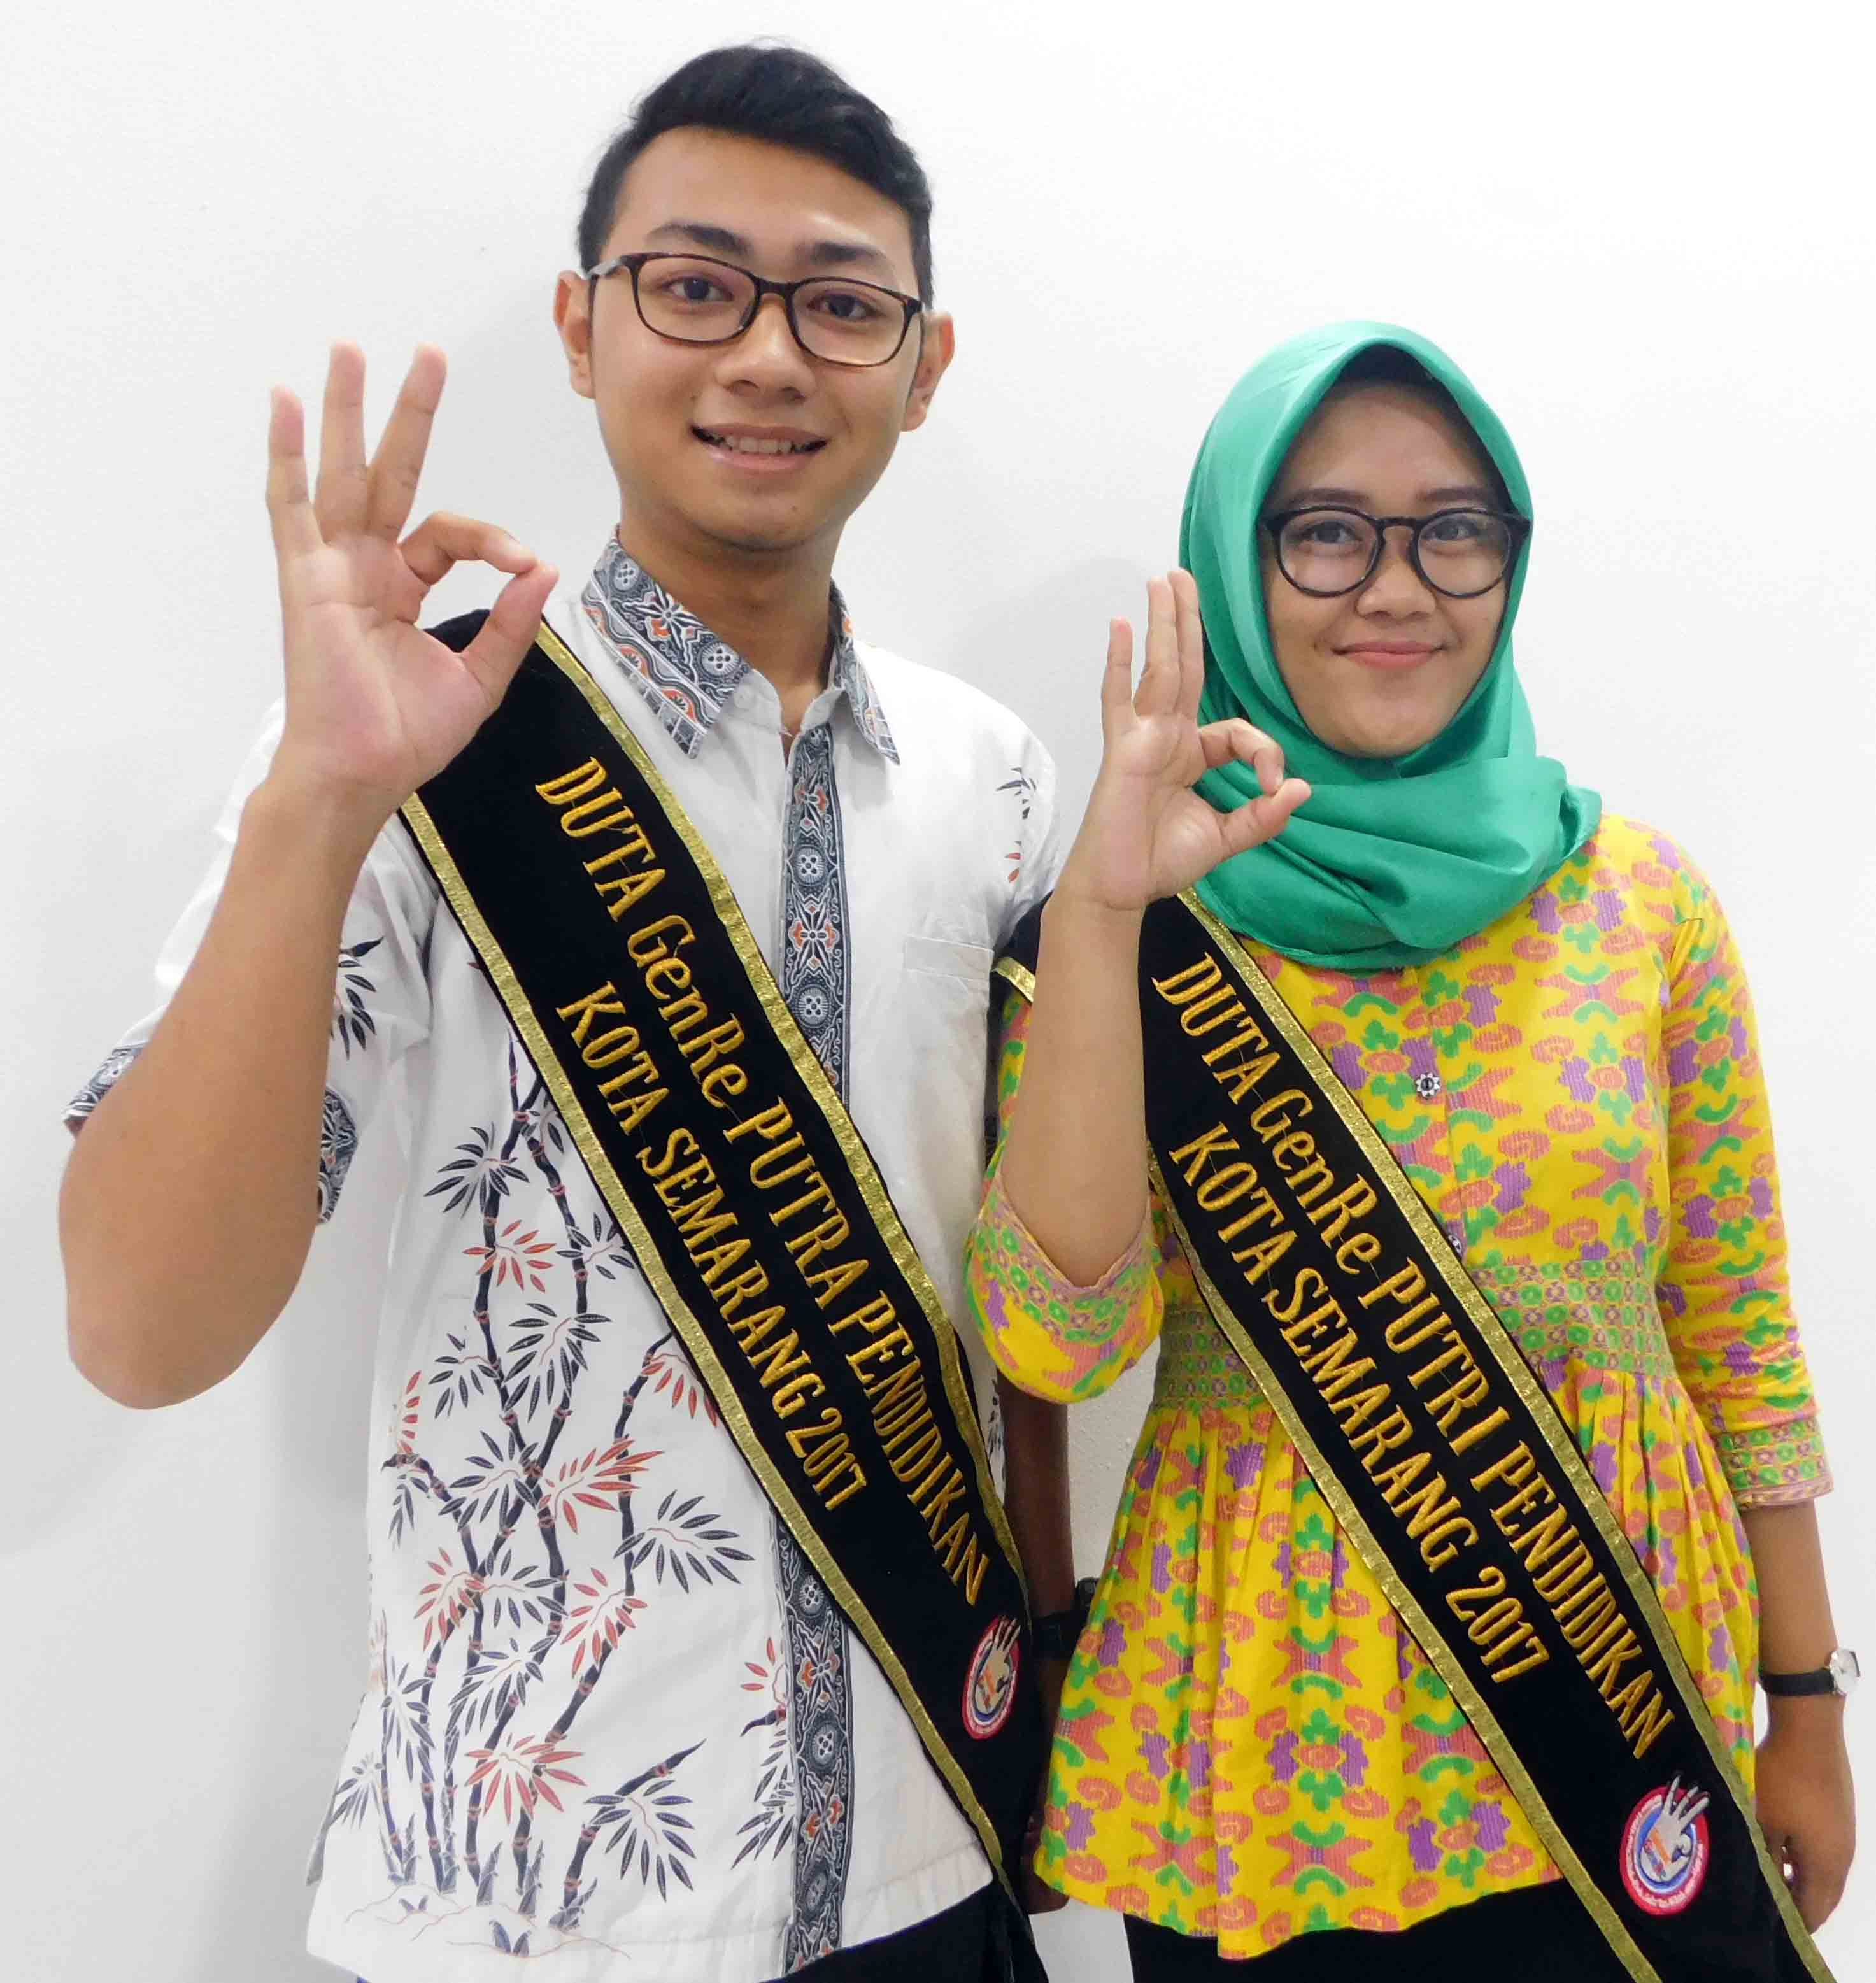 SEMARANG GENRE AMBASSADOR FROM UDINUS FKES IS GOING TO PROVINCIAL LEVEL